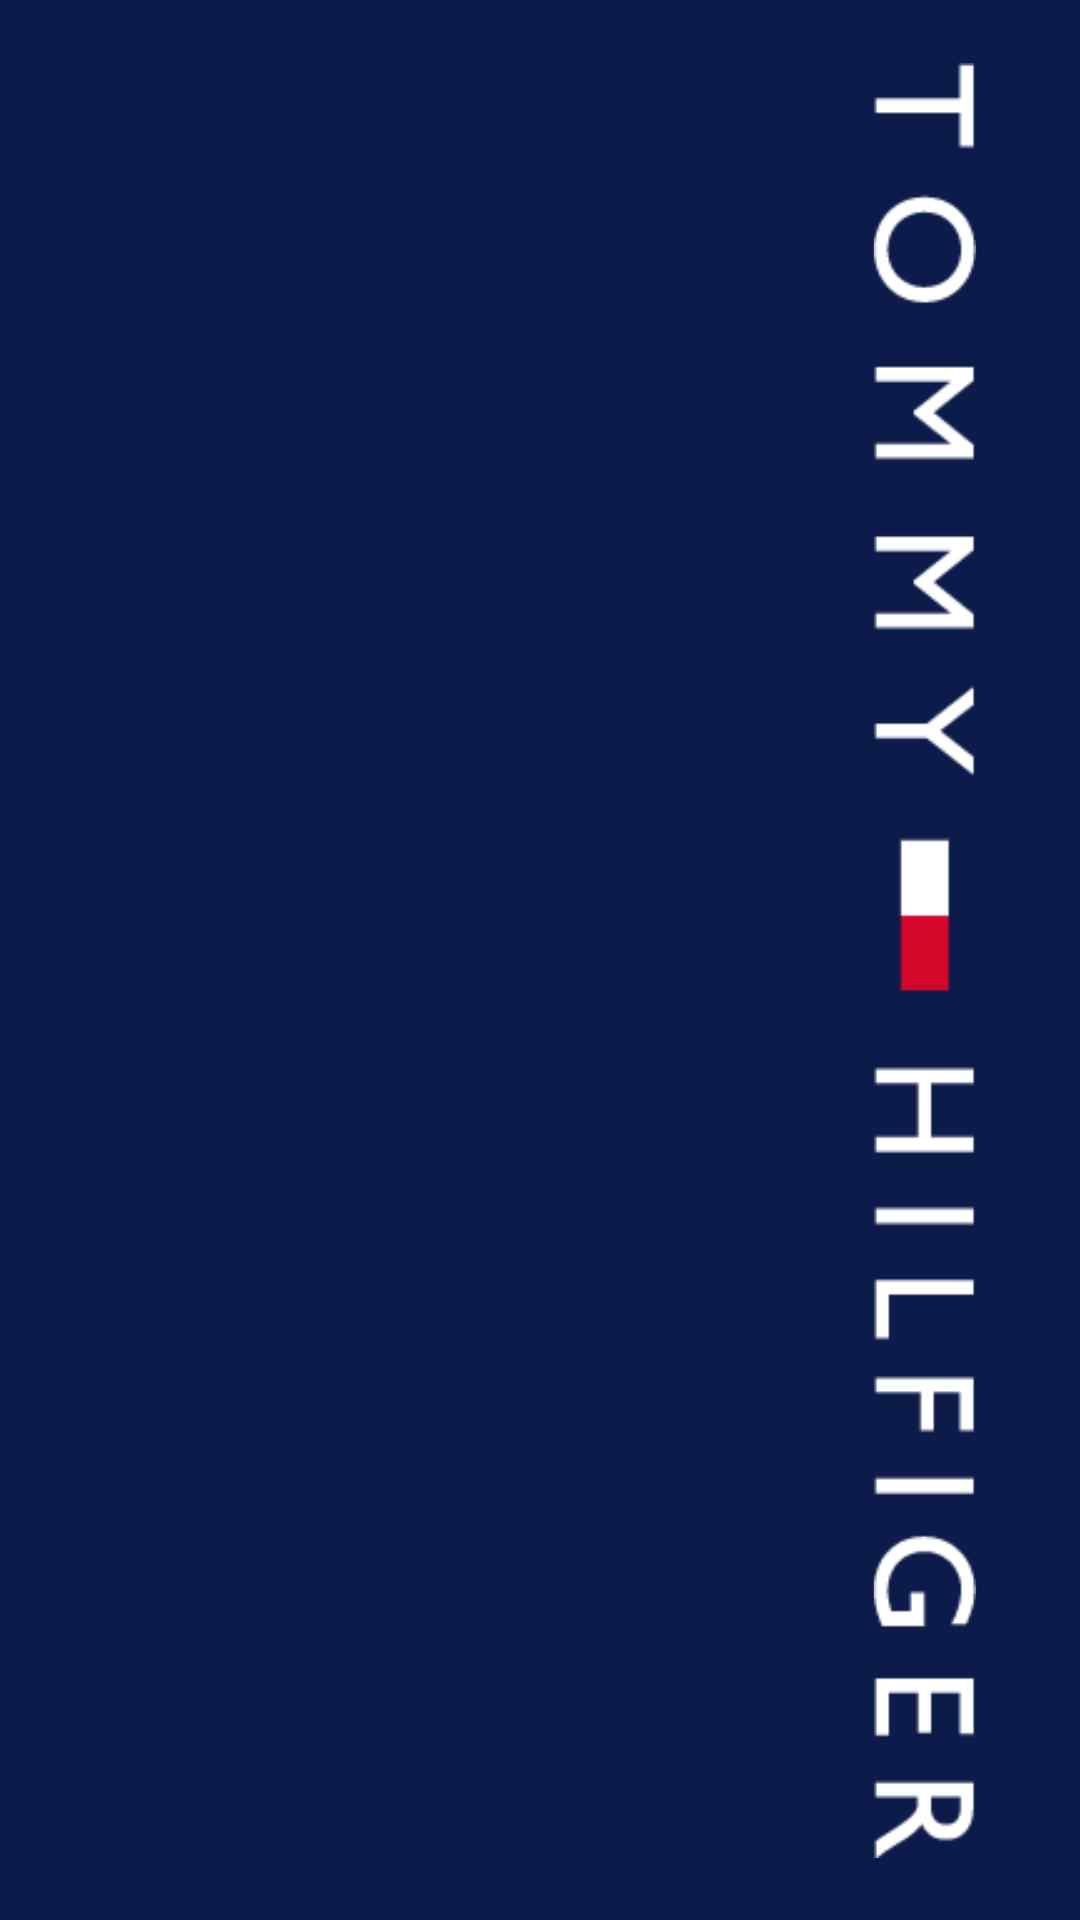 tommyhilfiger14 - TOMMY HILFIGER/トミー・ヒルフィガーの高画質スマホ壁紙20枚 [iPhone&Androidに対応]